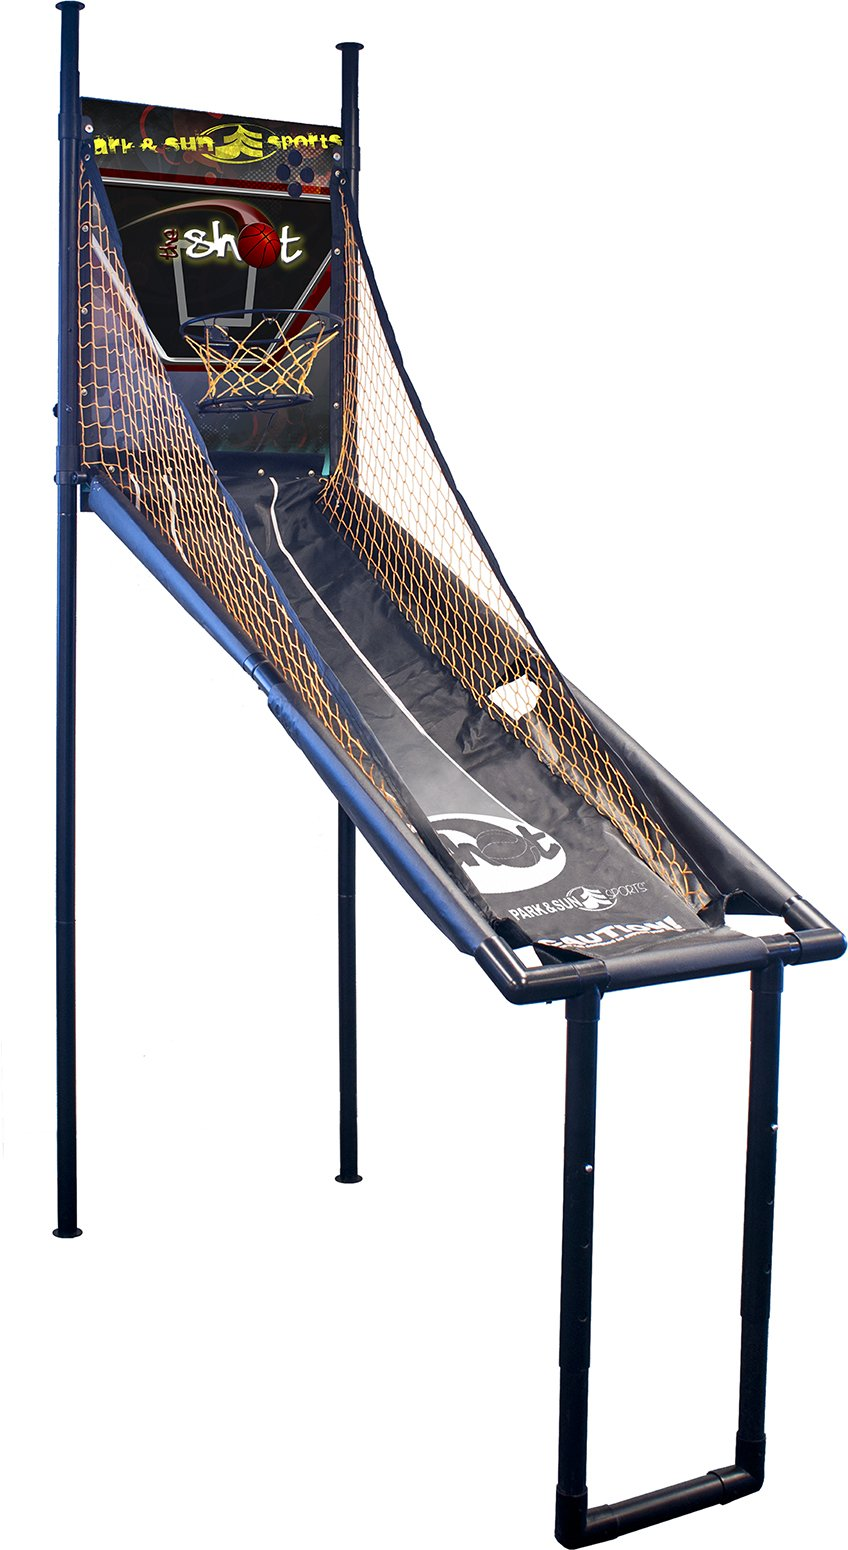 Park & Sun Sports ''The Shot'' Basketball Arcade Game with 2-Player Electronic Scoring by Park & Sun Sports